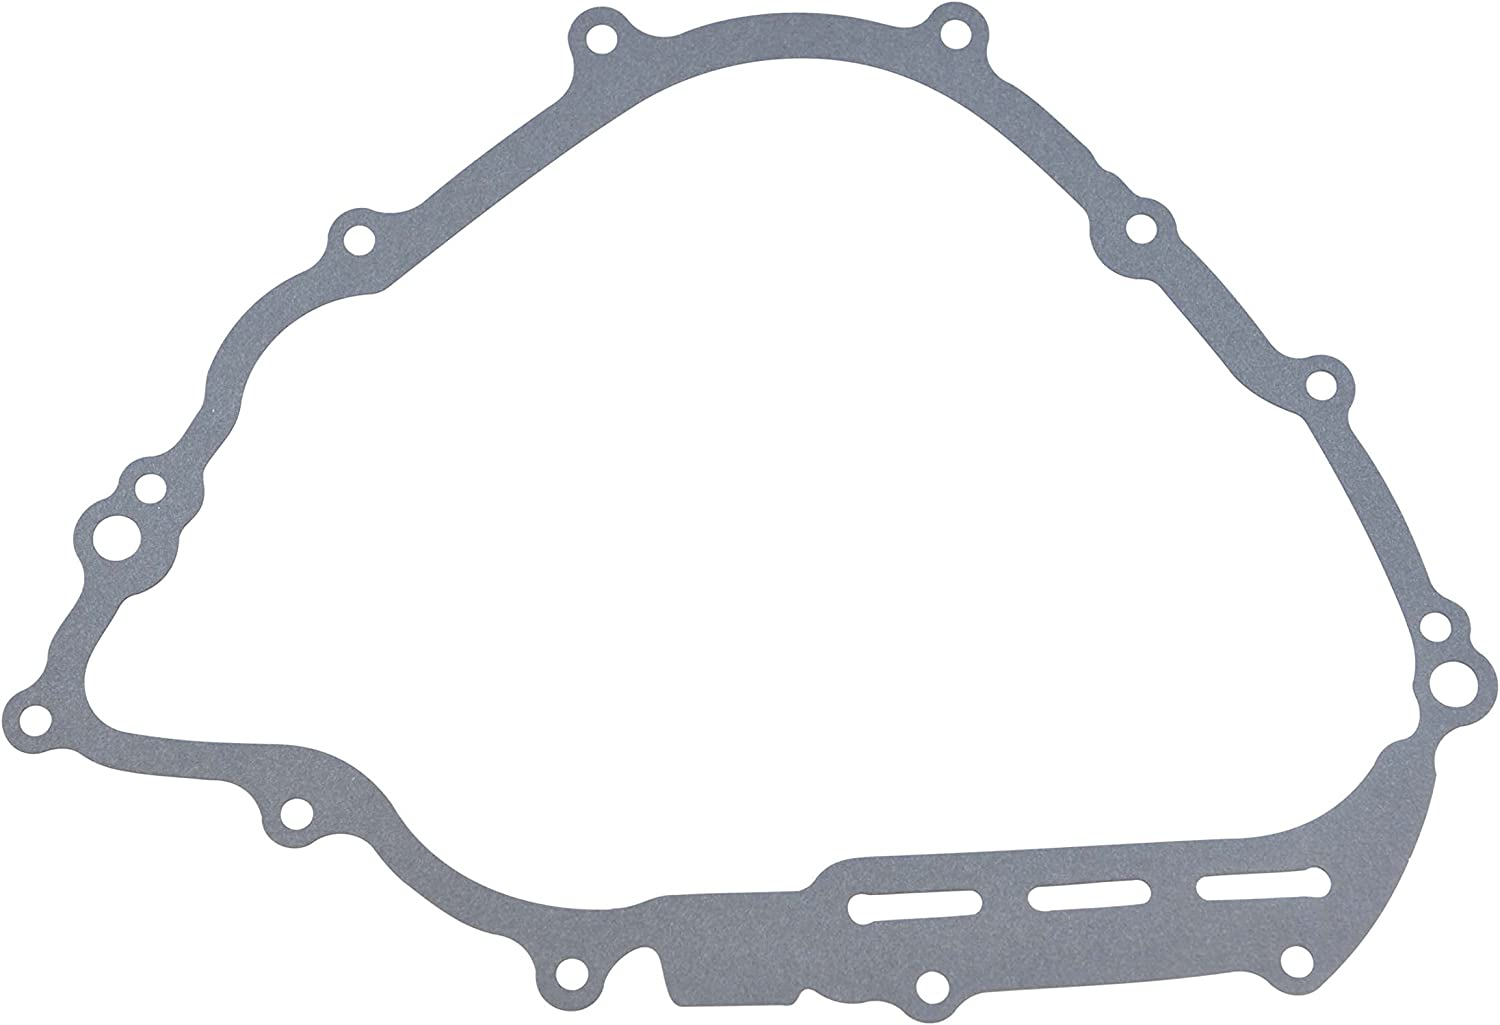 MG 331228 Water Pump Gasket for Yamaha Yfm 700 Grizzly 06-2013